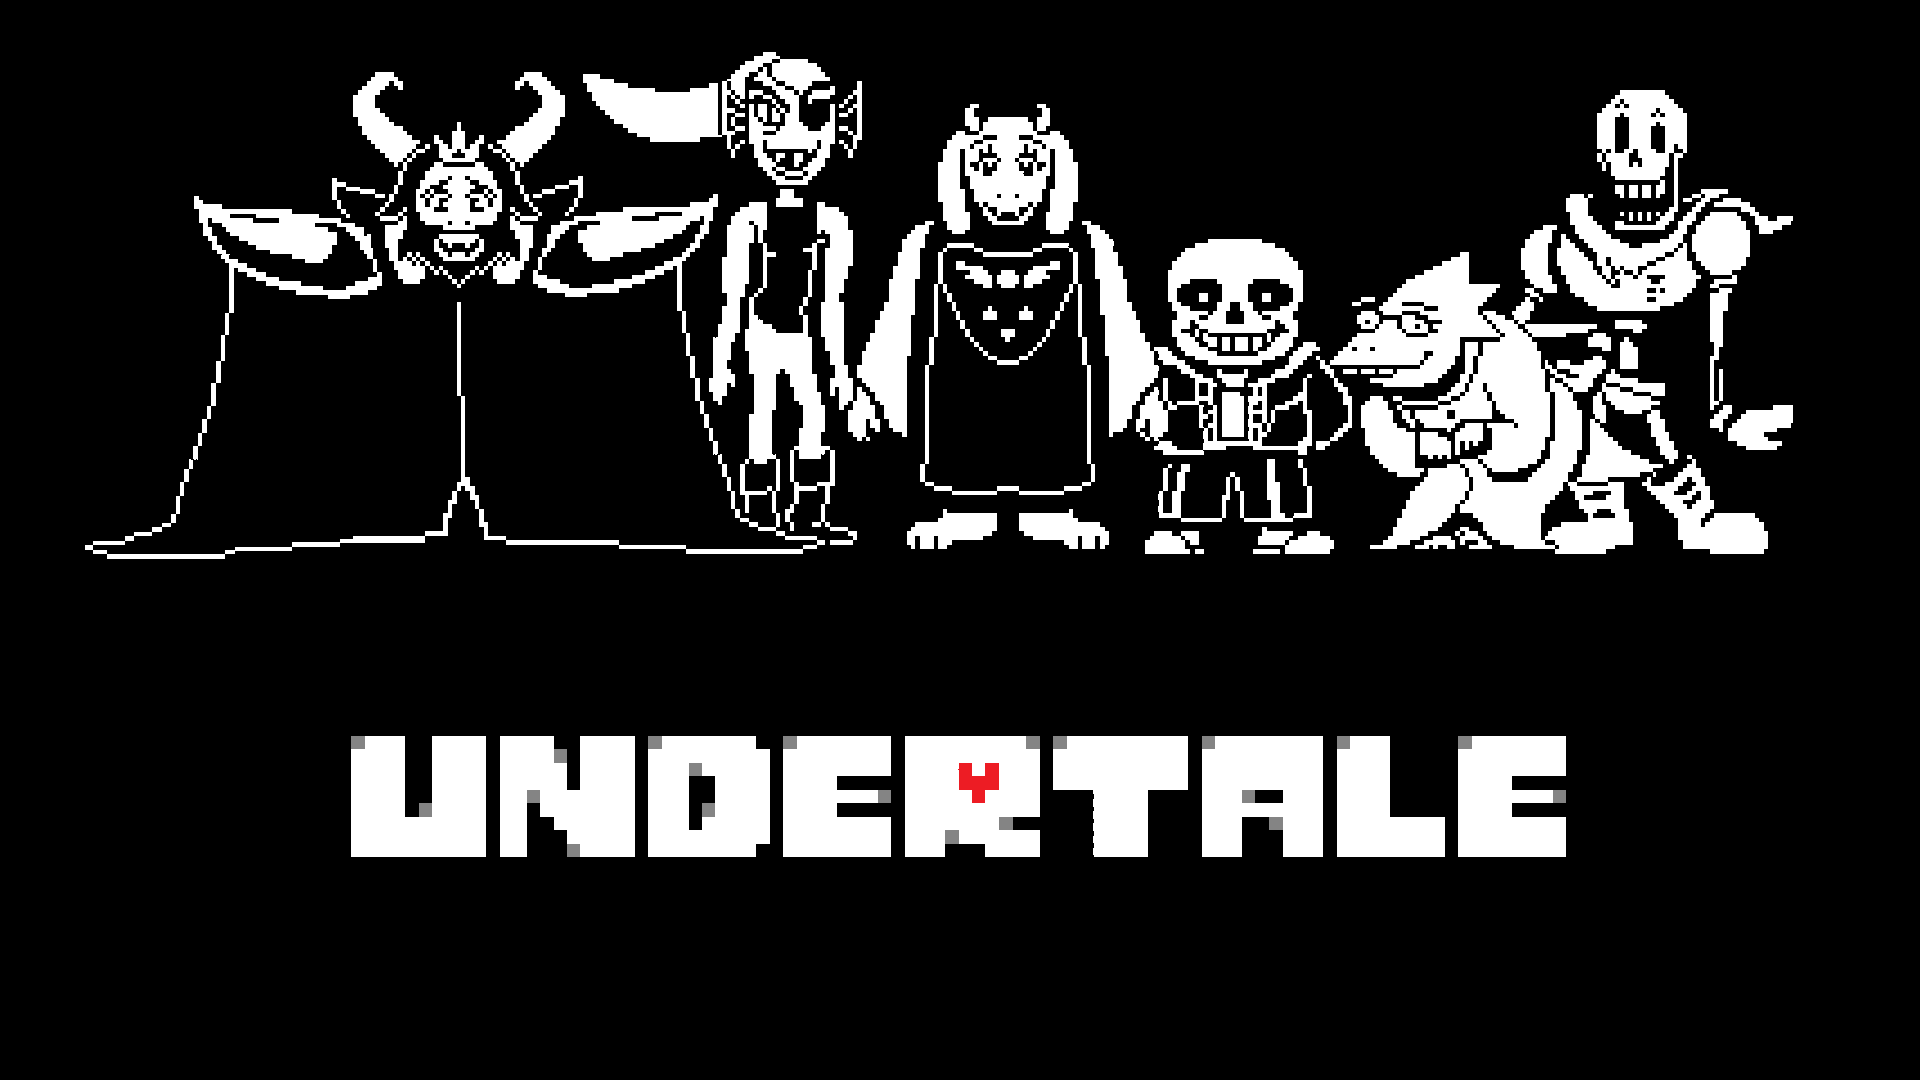 Undertale Background